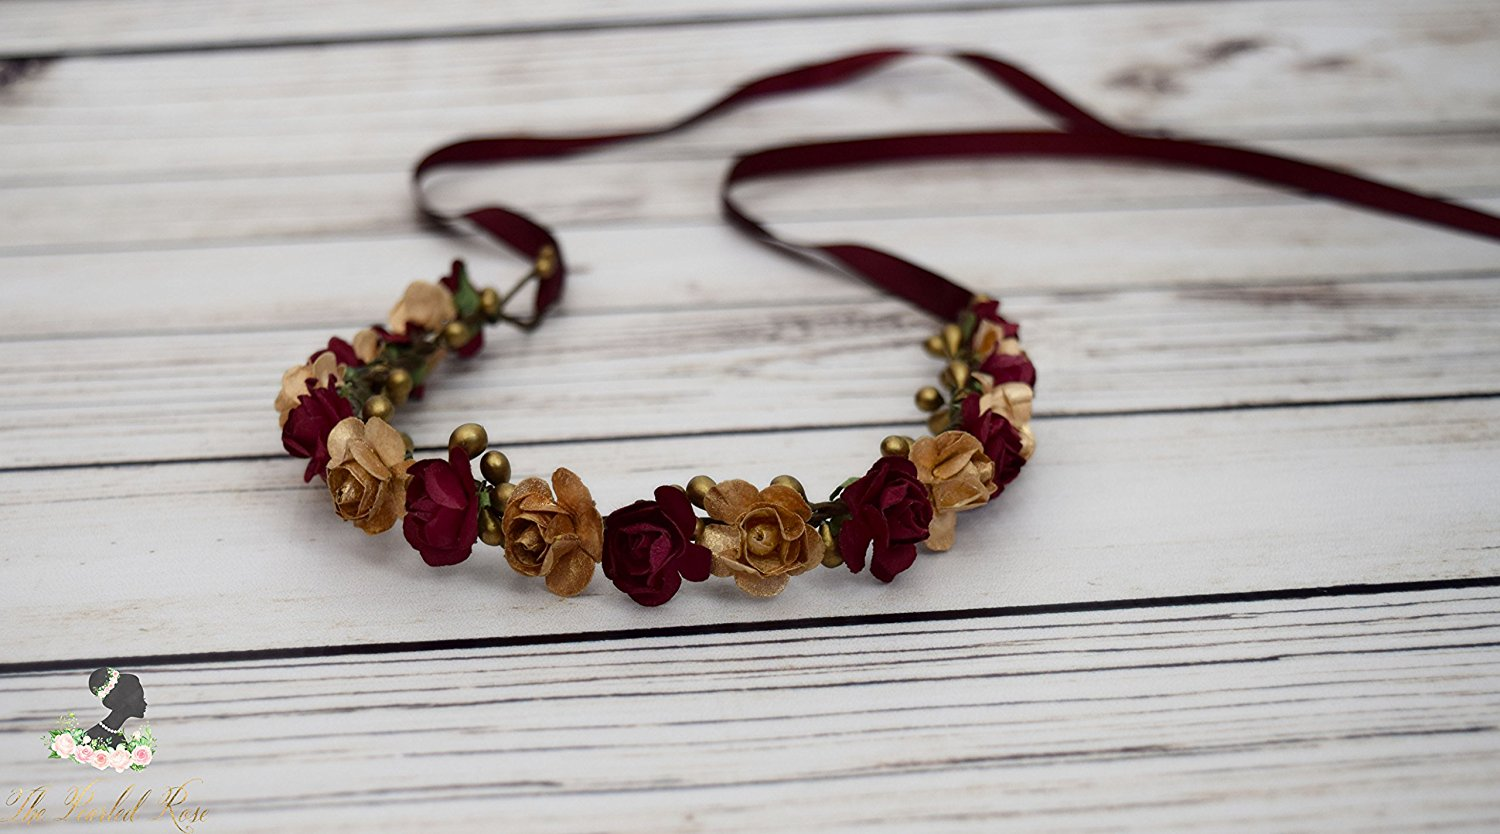 Cheap Flower Crown For Sale Find Flower Crown For Sale Deals On